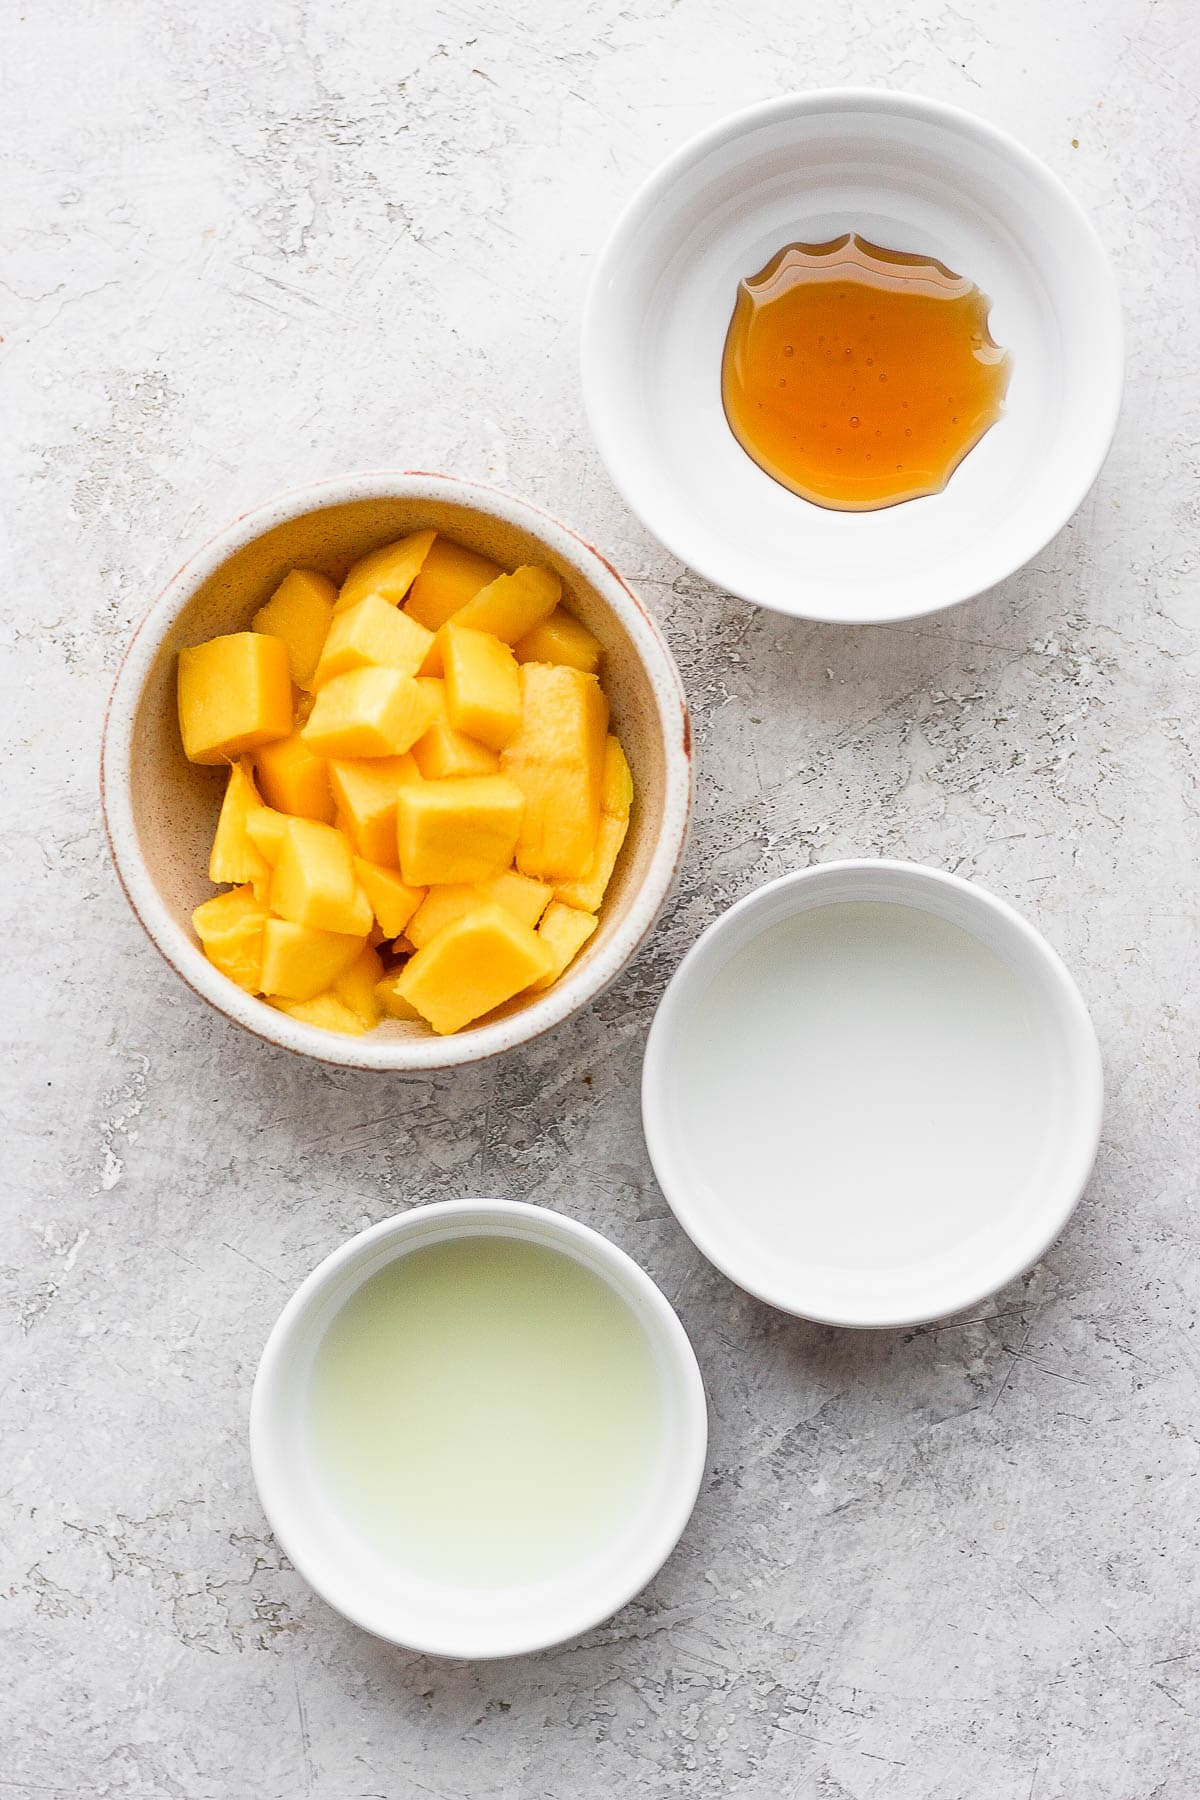 Ingredients for mango margaritas in small white bowls.